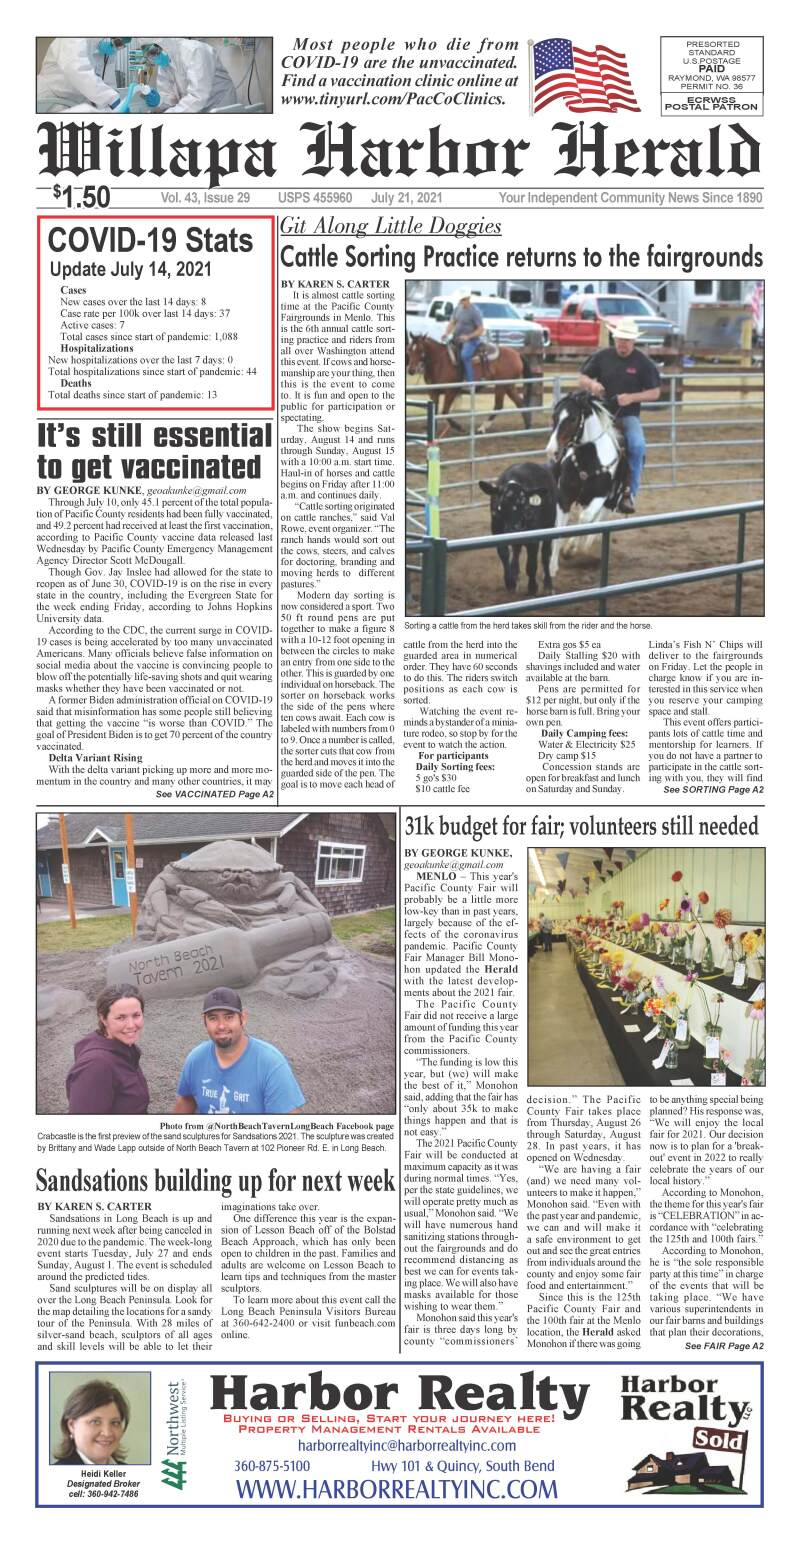 July 21, 2021 Willapa Harbor Herald and Pacific County Press